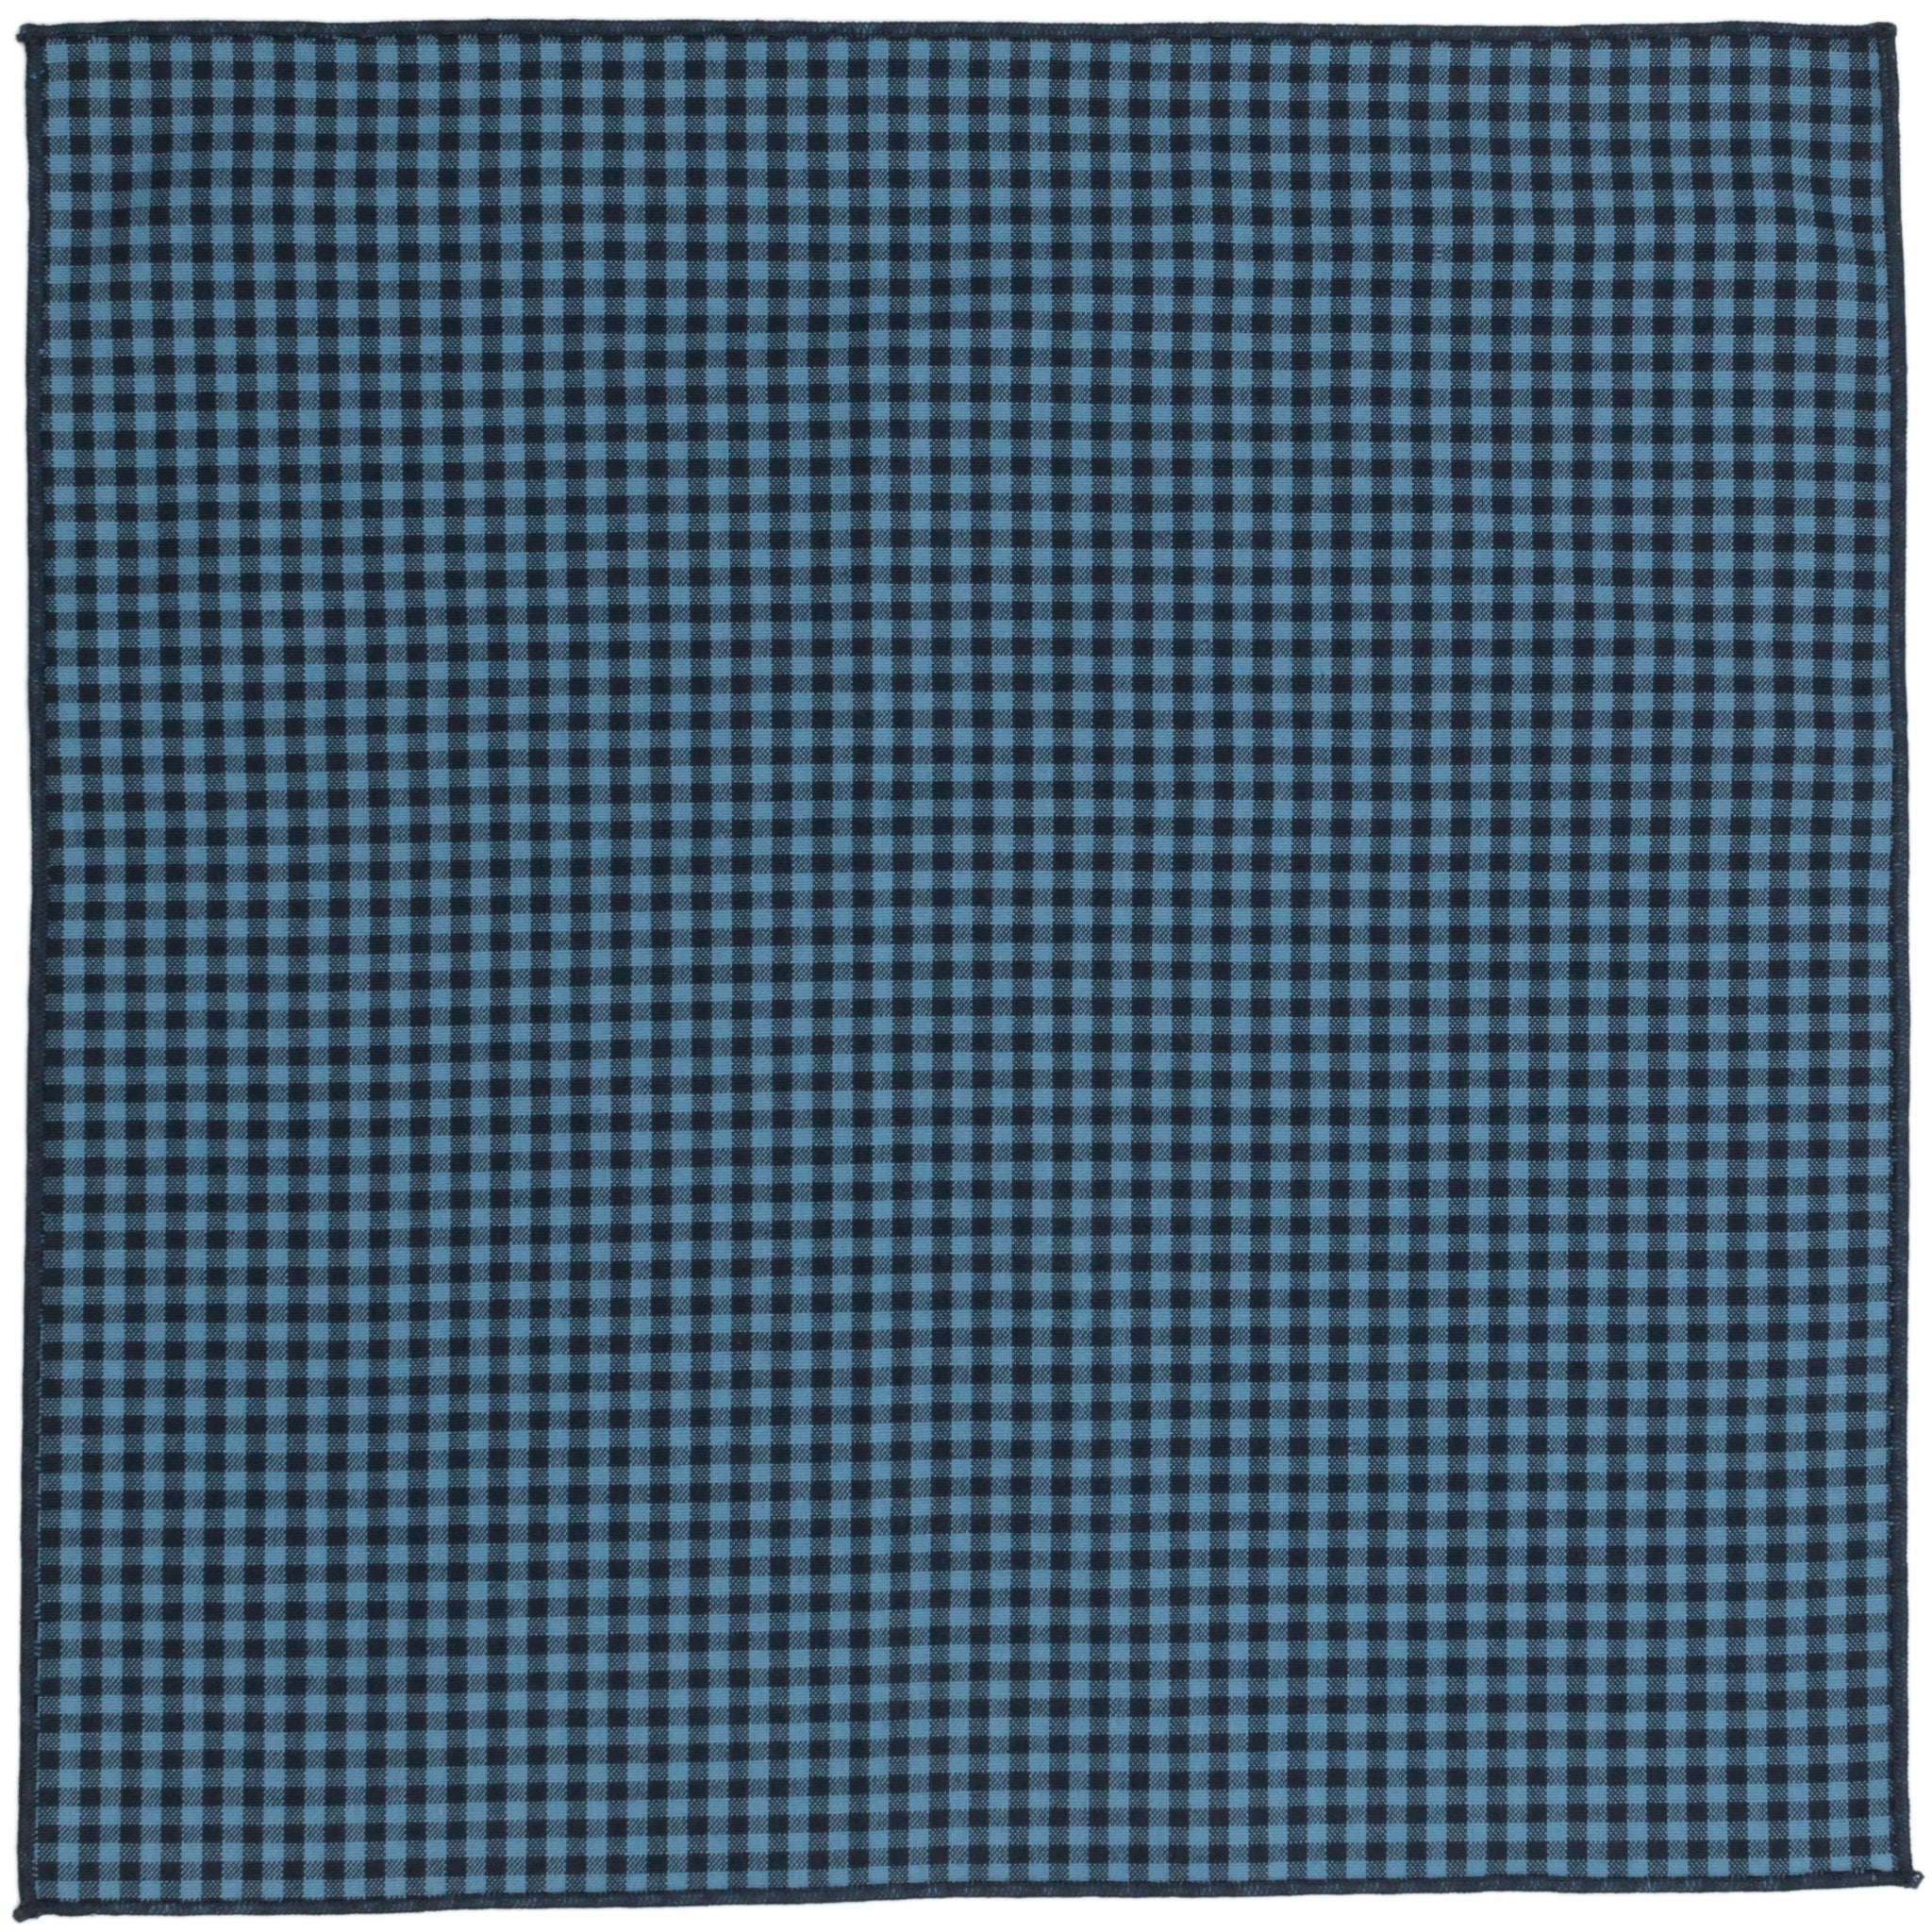 Charlie Blue Gingham Cotton Pocket Square Made in Canada